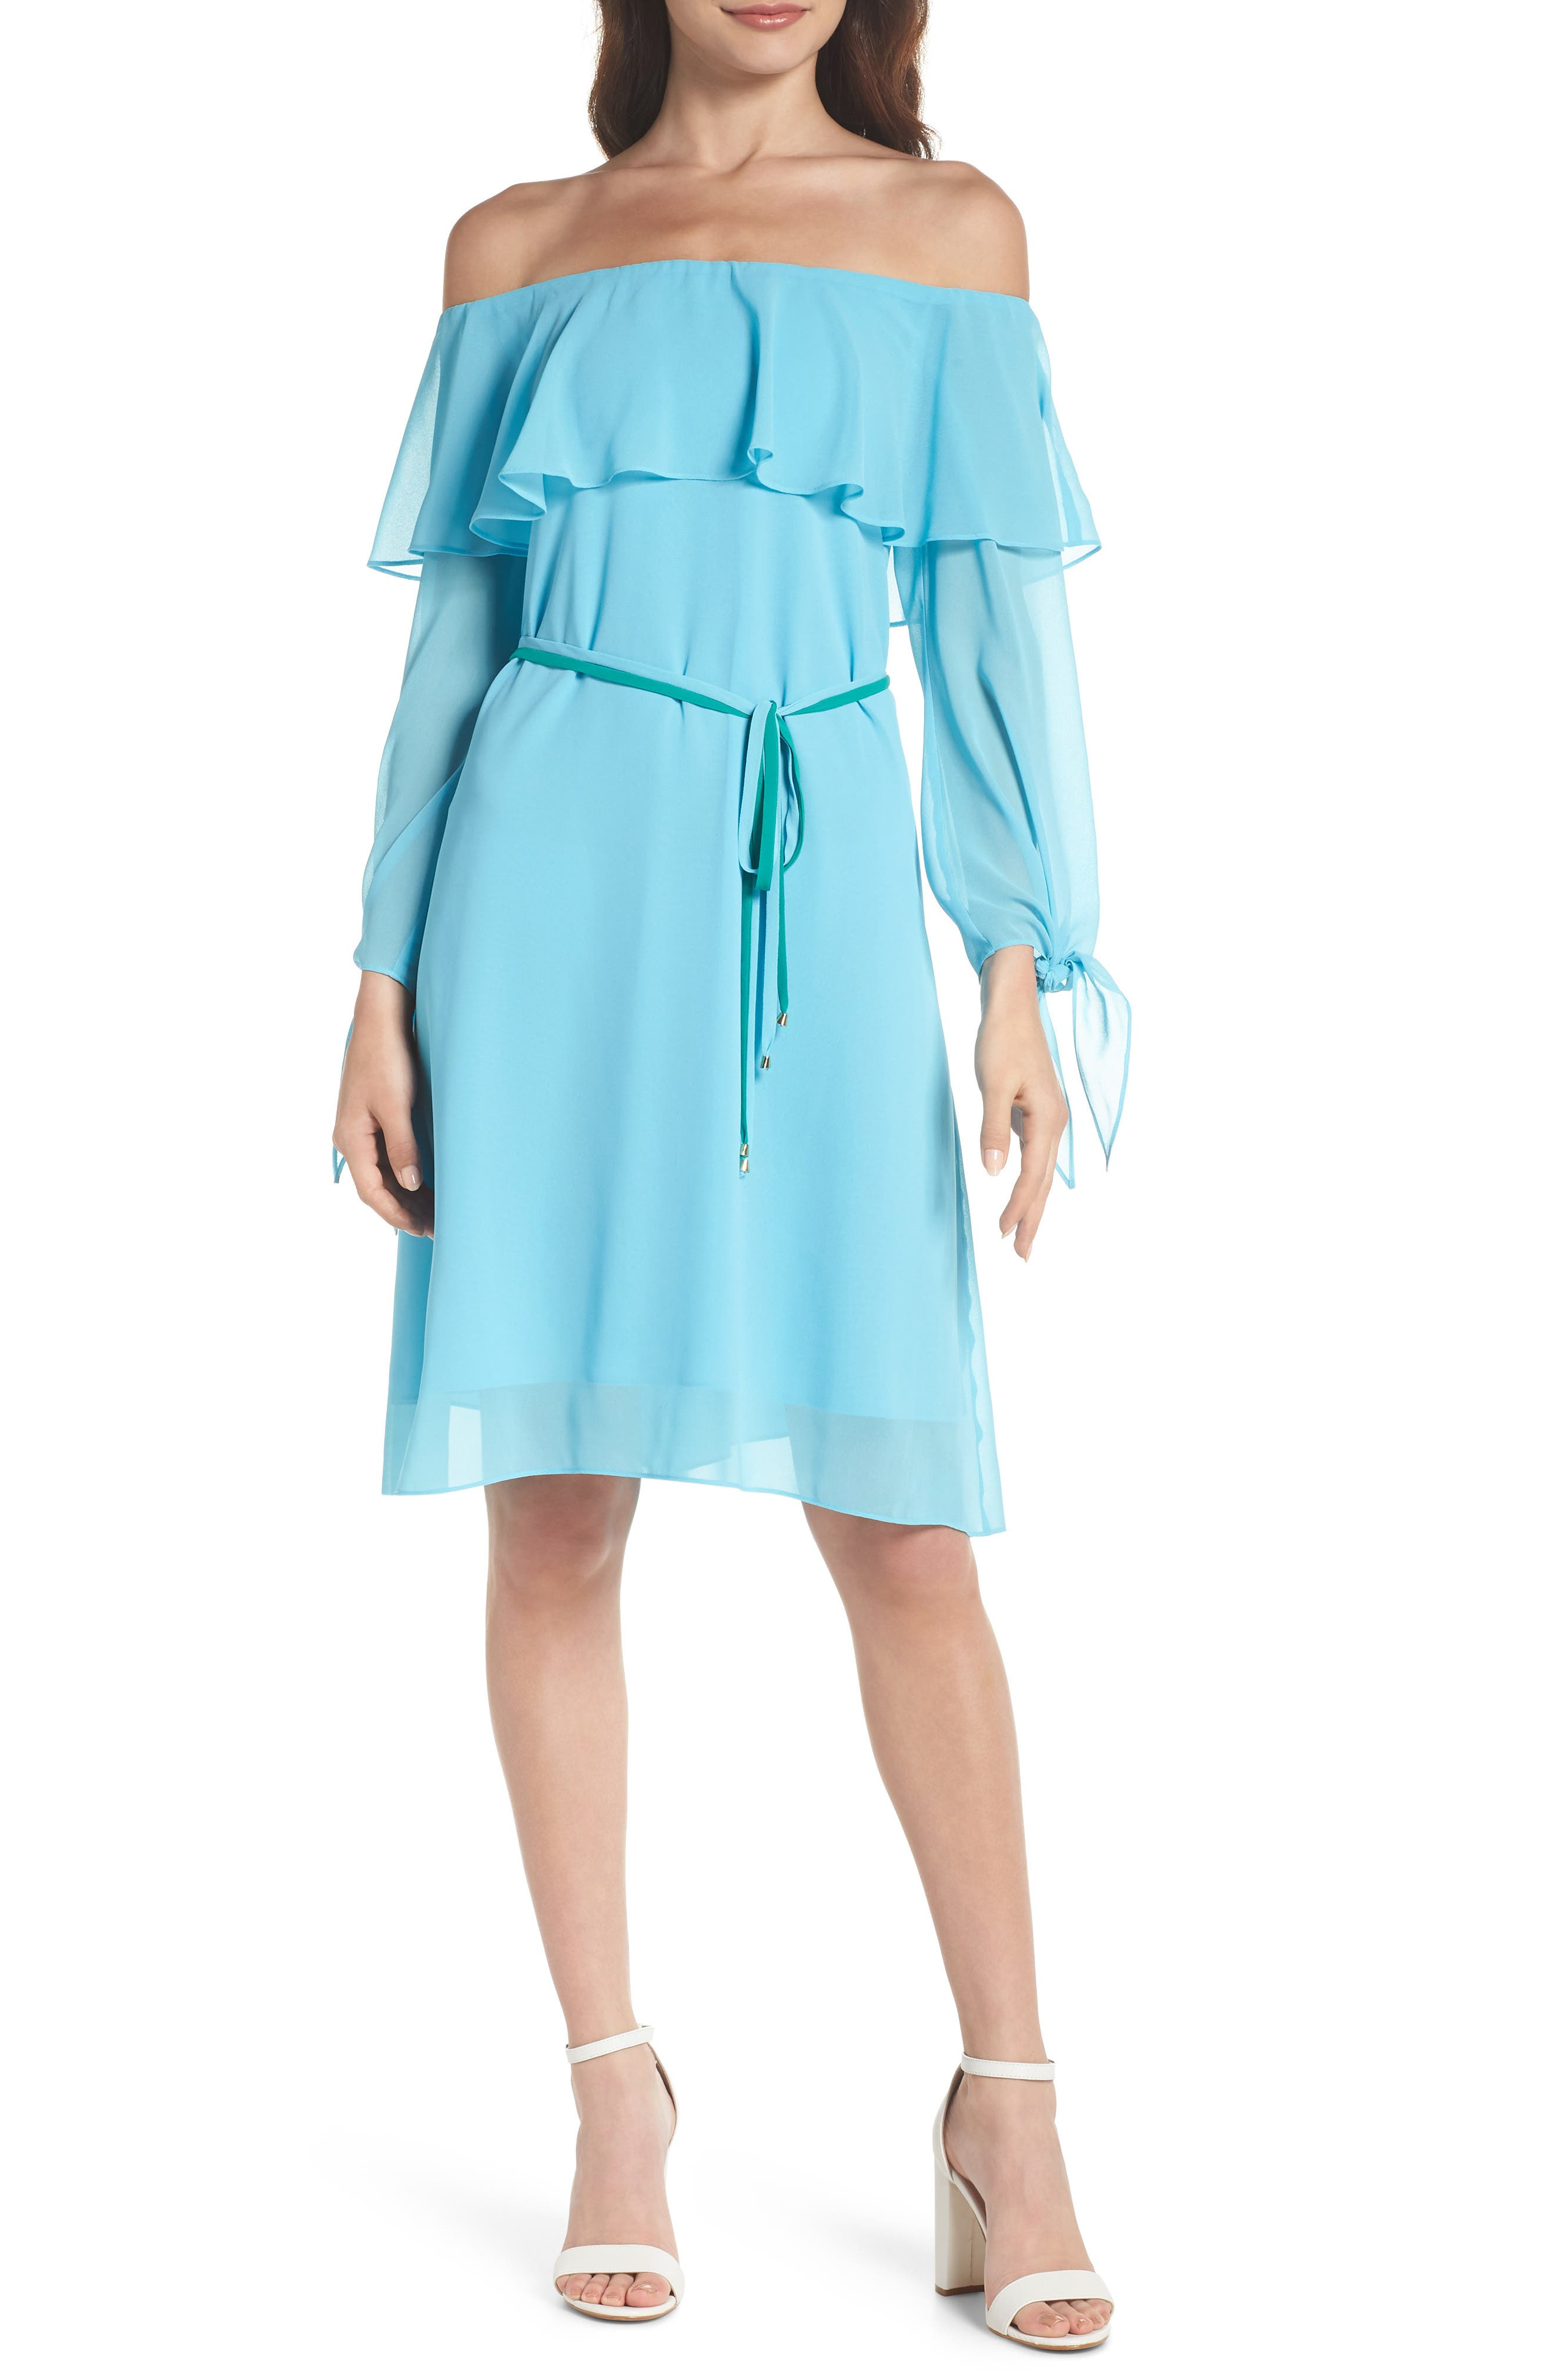 Off the Shoulder Ruffle & Tie Dress,                         Main,                         color, 414